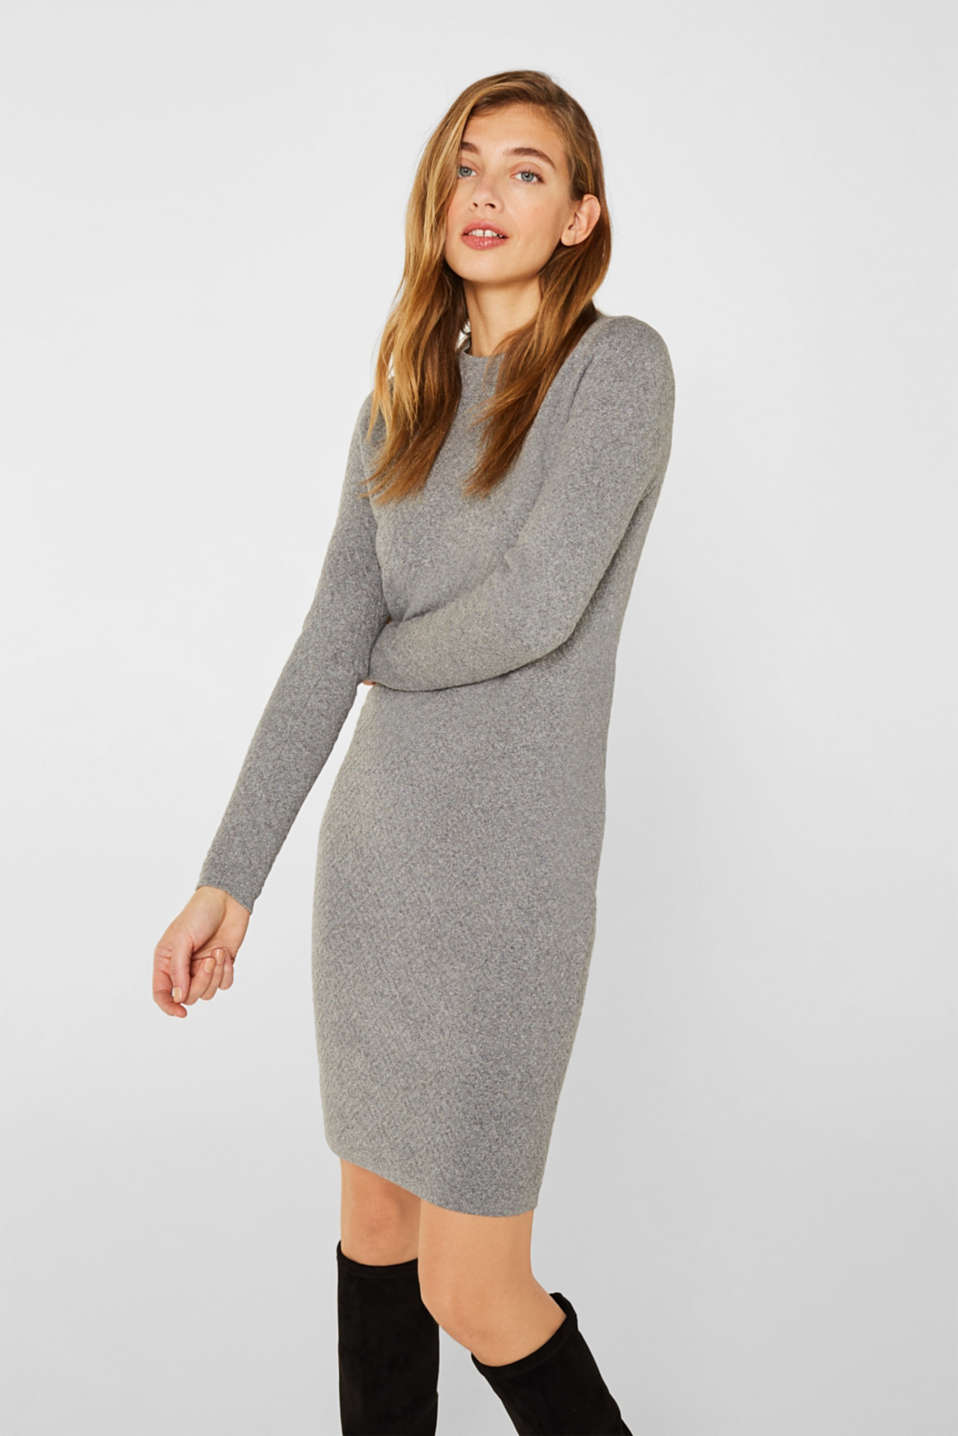 Esprit - Knit dress with a relief texture